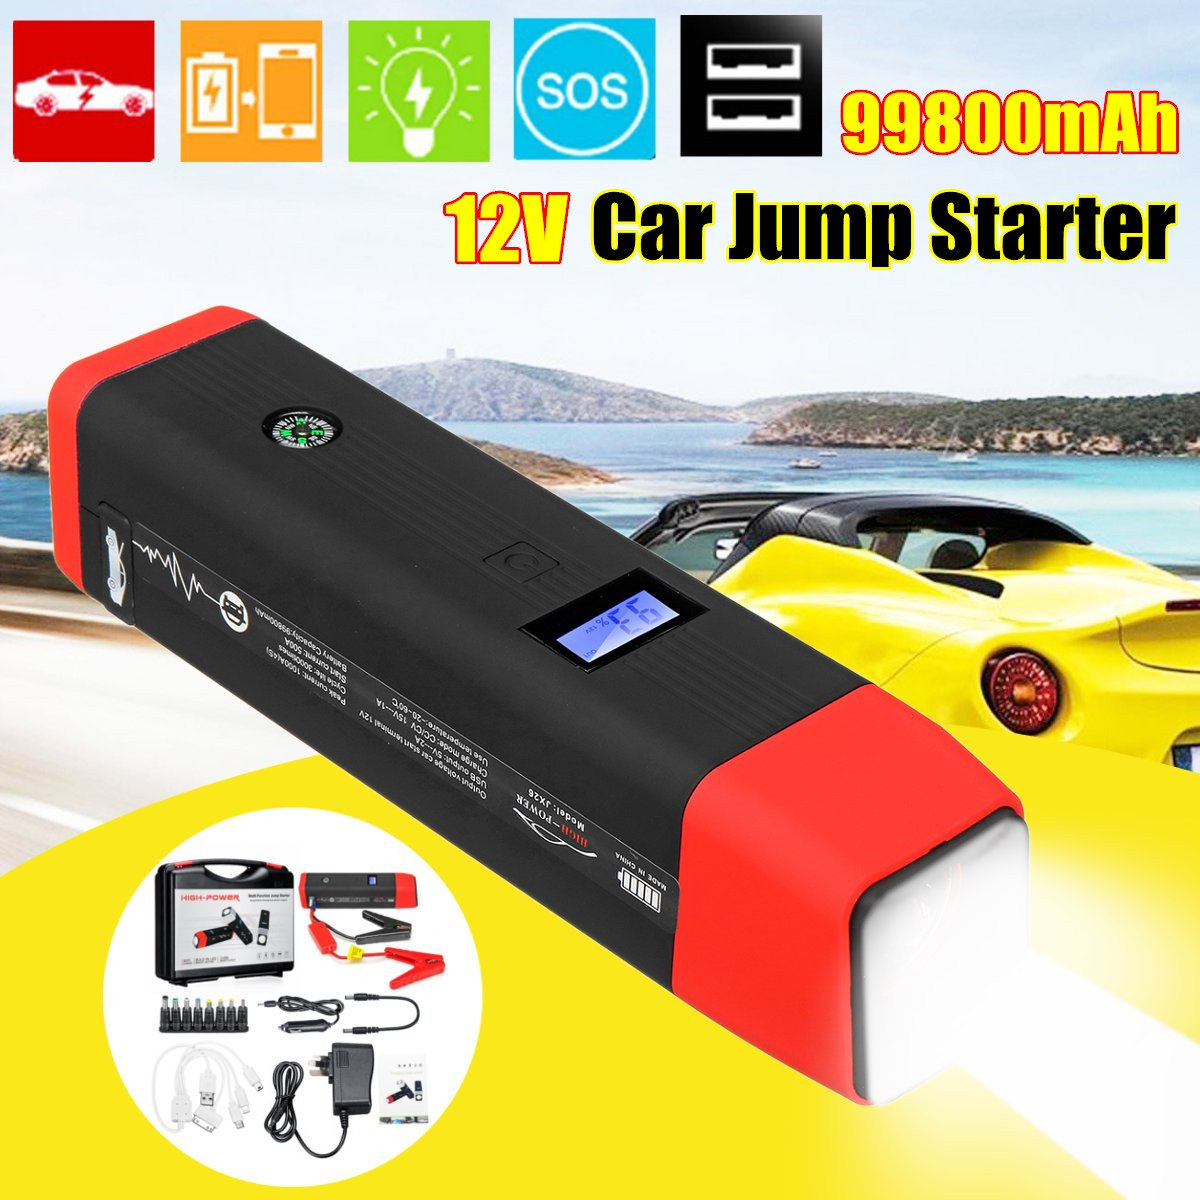 99800mAh 12V 2USB Start Best <font><b>1000A</b></font> Peaks Current <font><b>Car</b></font> <font><b>Jump</b></font> <font><b>Starter</b></font> Starting Power Bank Auto Battery Portable Pack Booster image